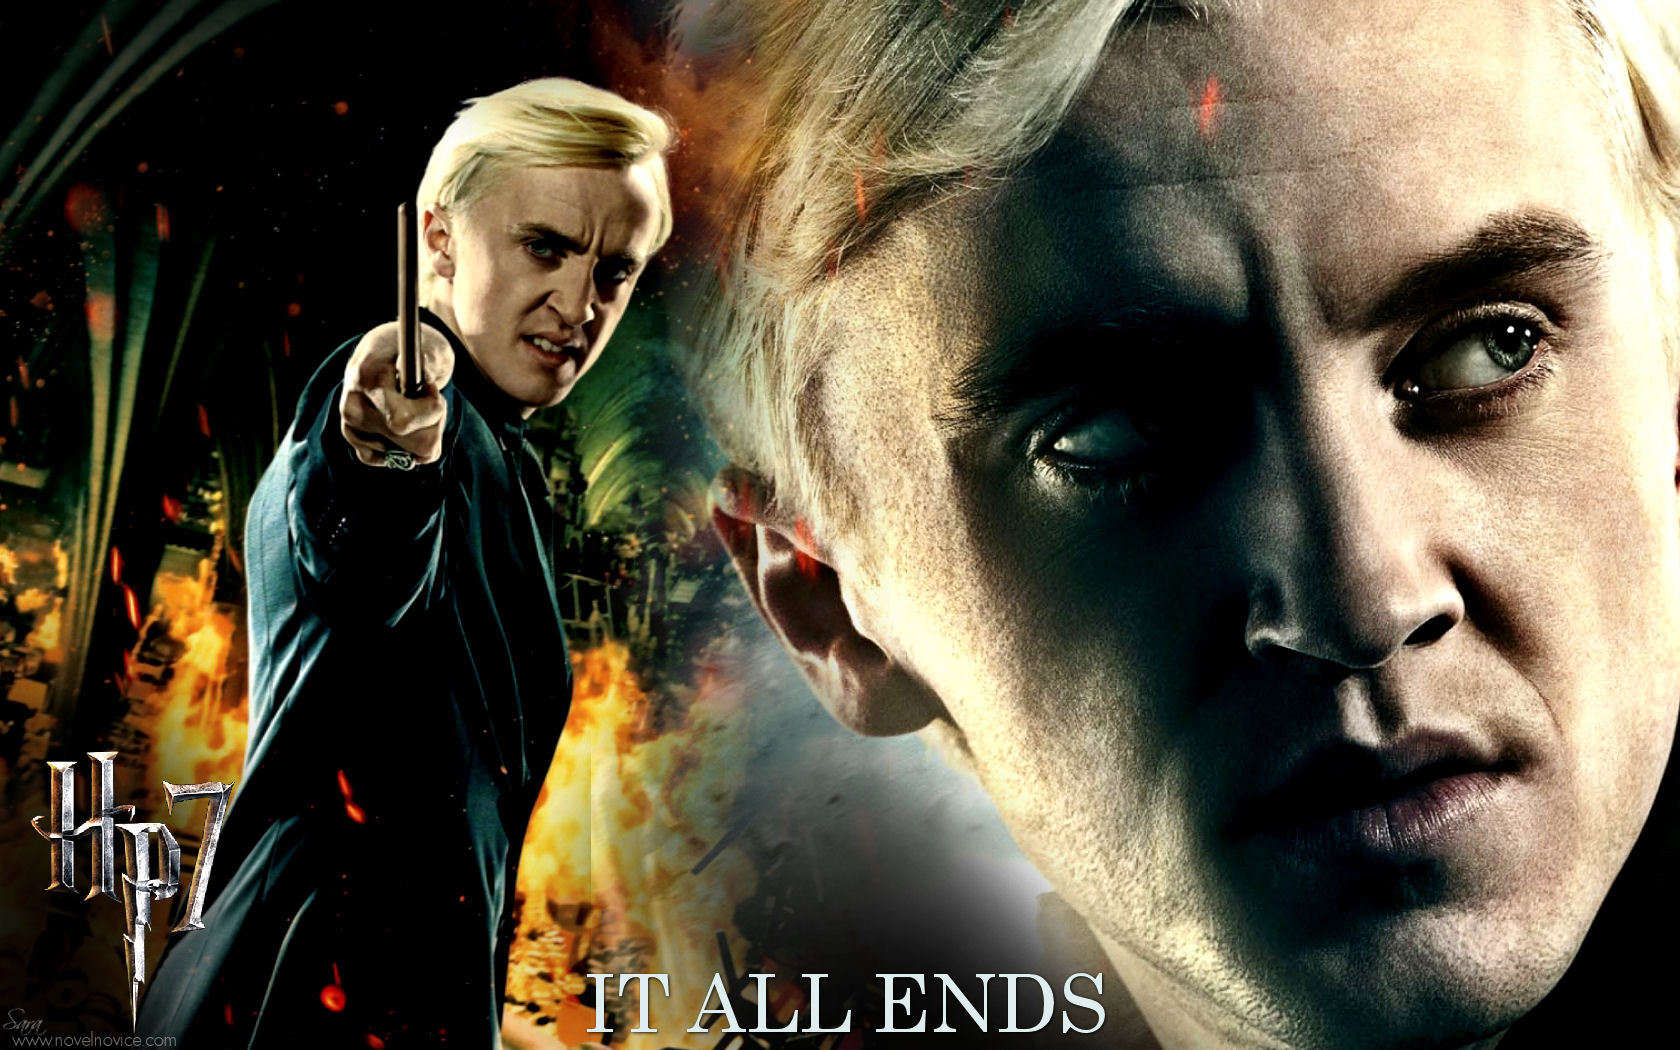 KTKA Review: Harry Potter and the Deathly Hallows – Part 2